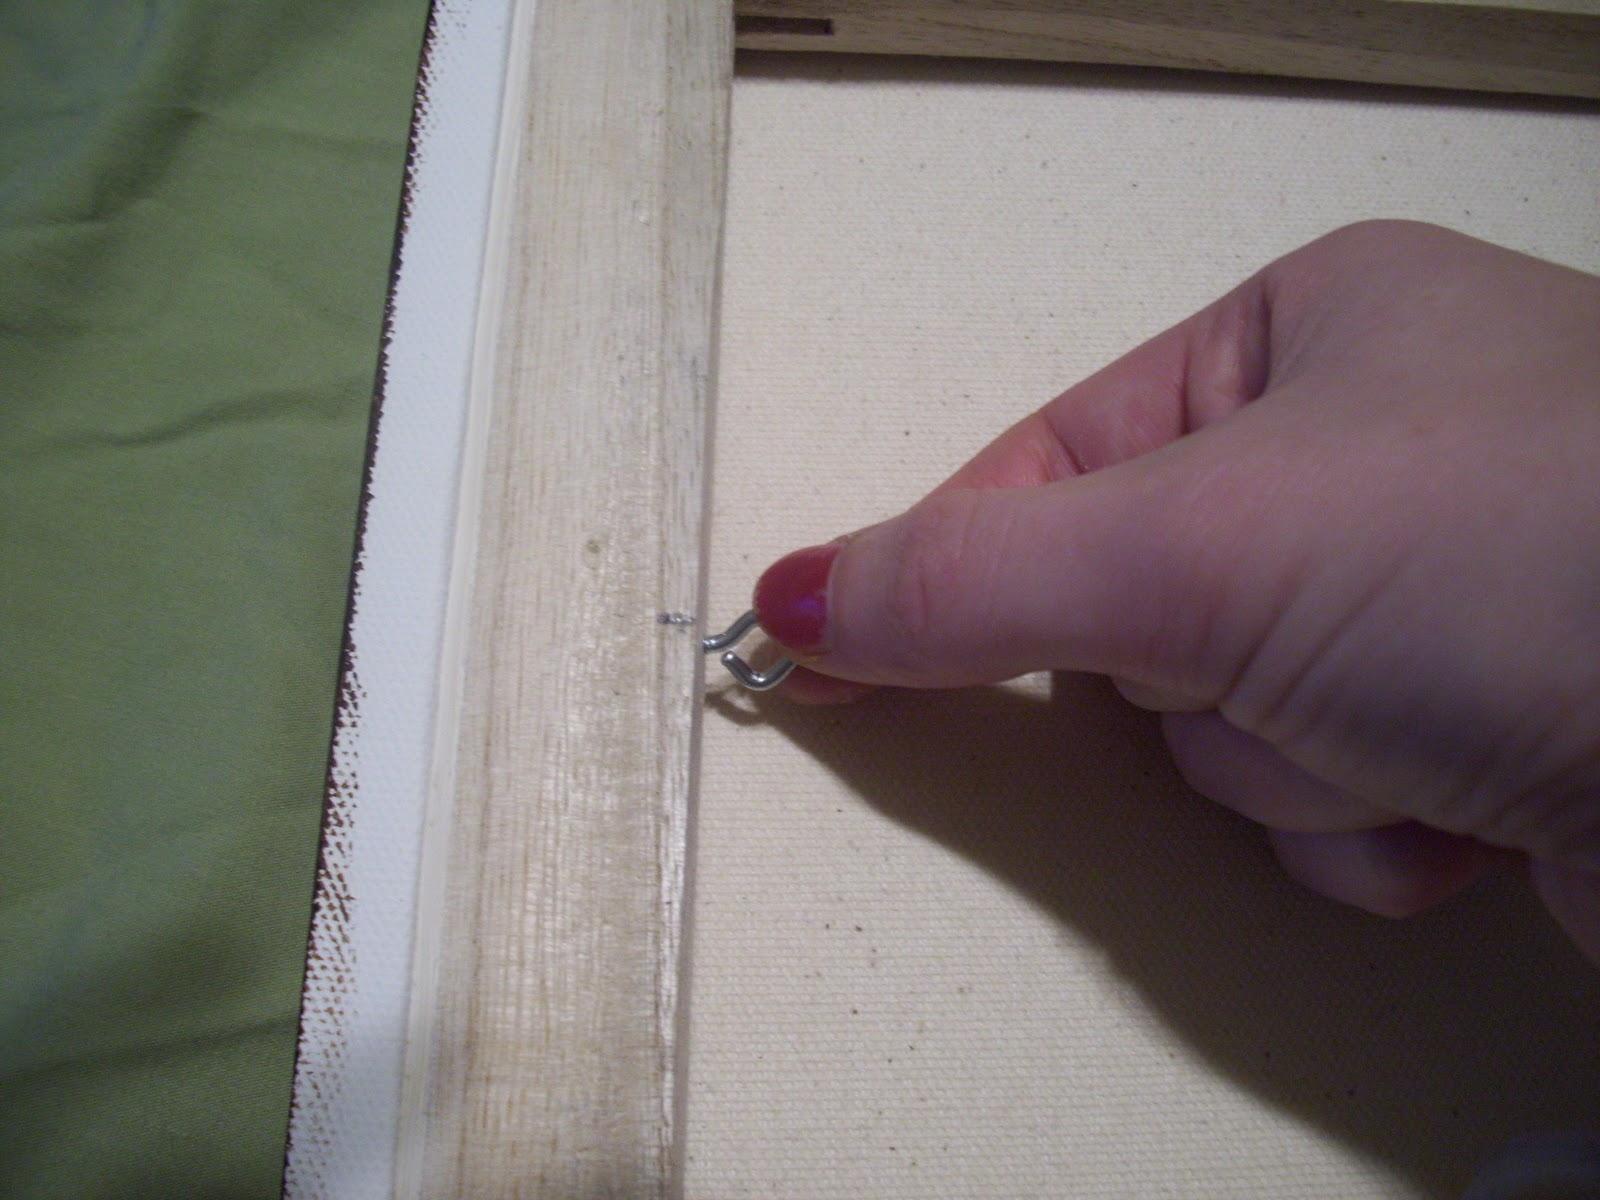 Art by jae how to wire a painting for hanging repeat step 3 and 4 for the opposite stretcher bar so that both eye hooks are in place jeuxipadfo Gallery